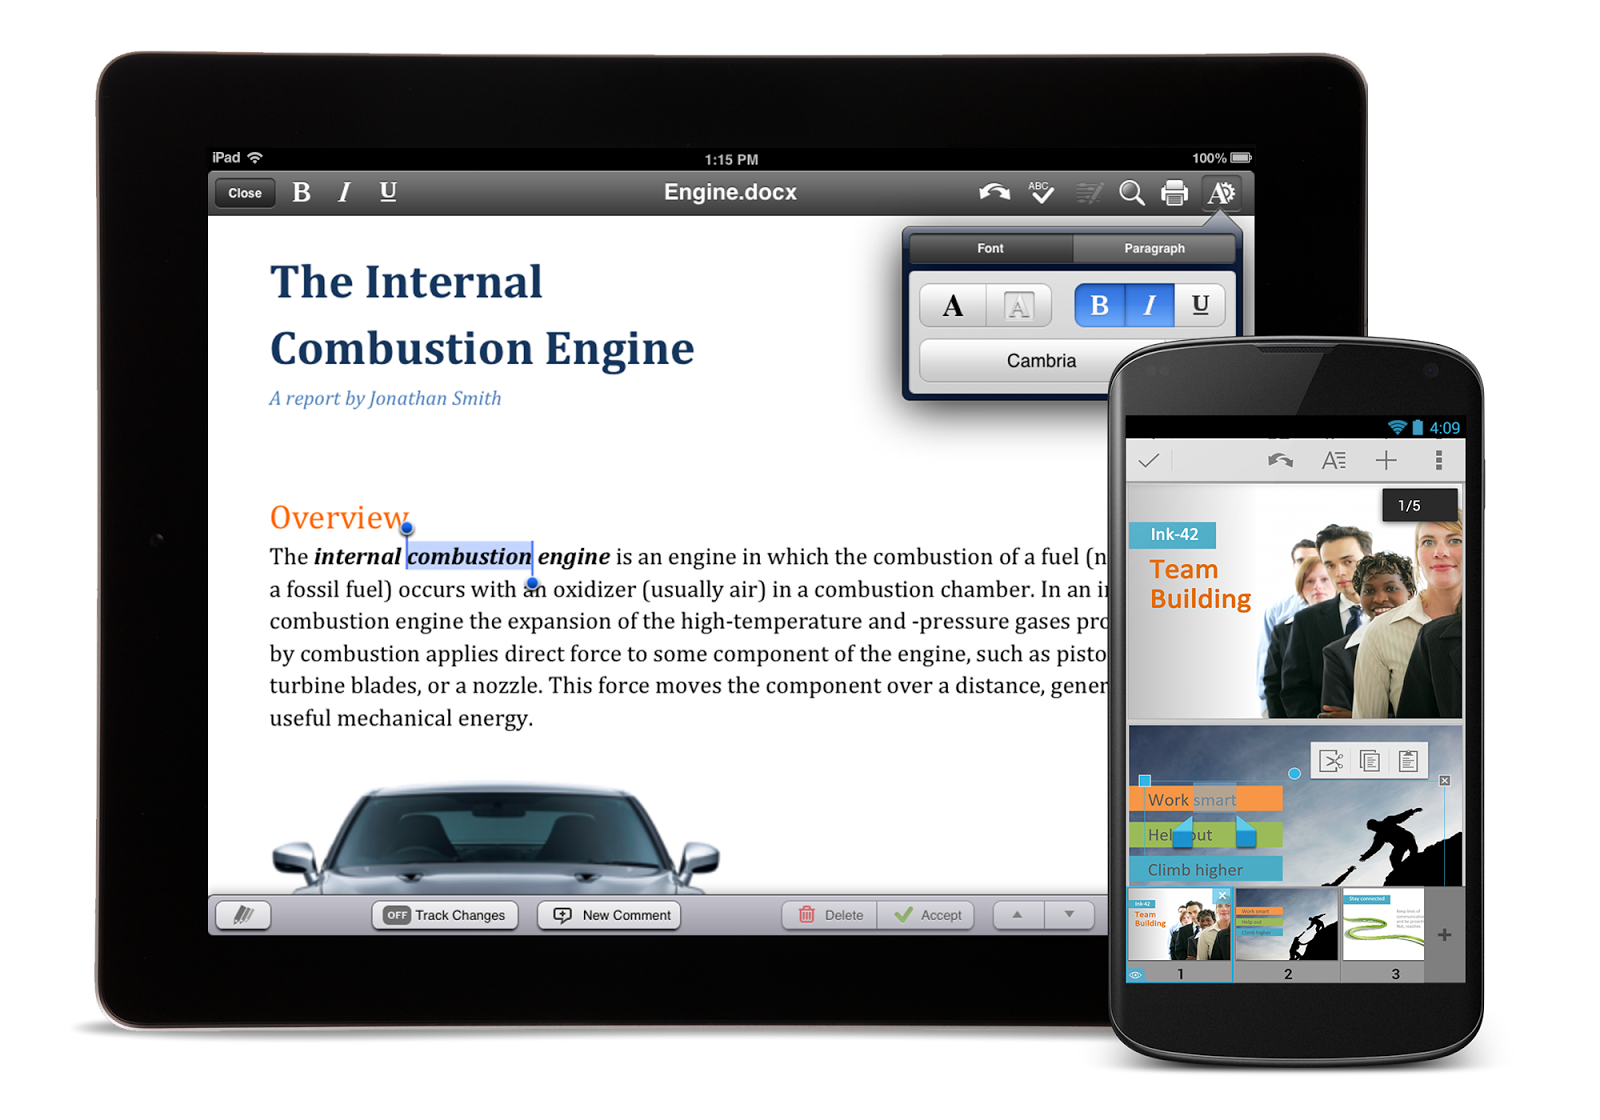 Quickoffice for ipad 3 free download.